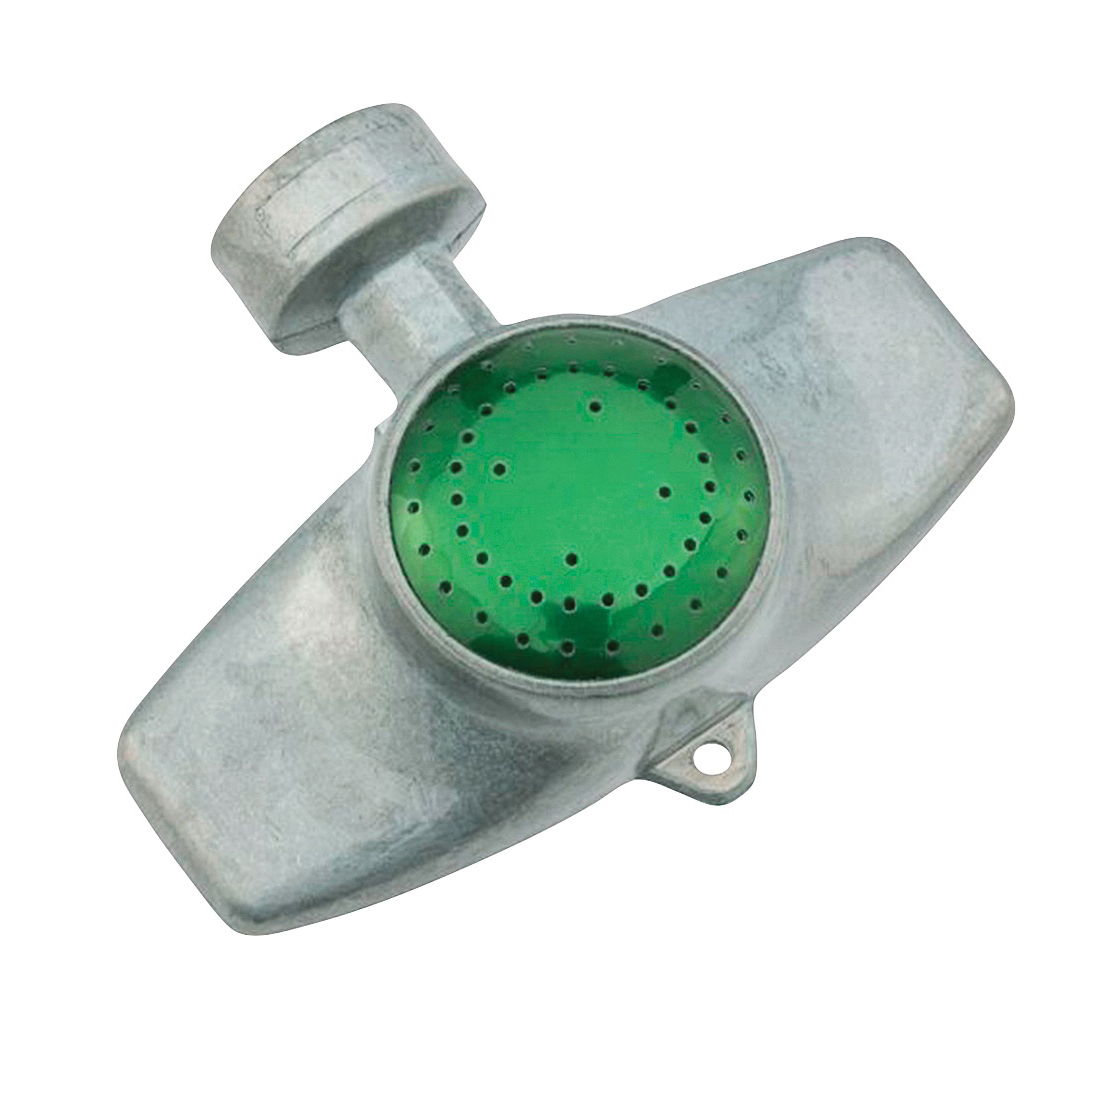 Picture of Gilmour 808763-1001 Stationary Sprinkler, Full-Circle, Metal